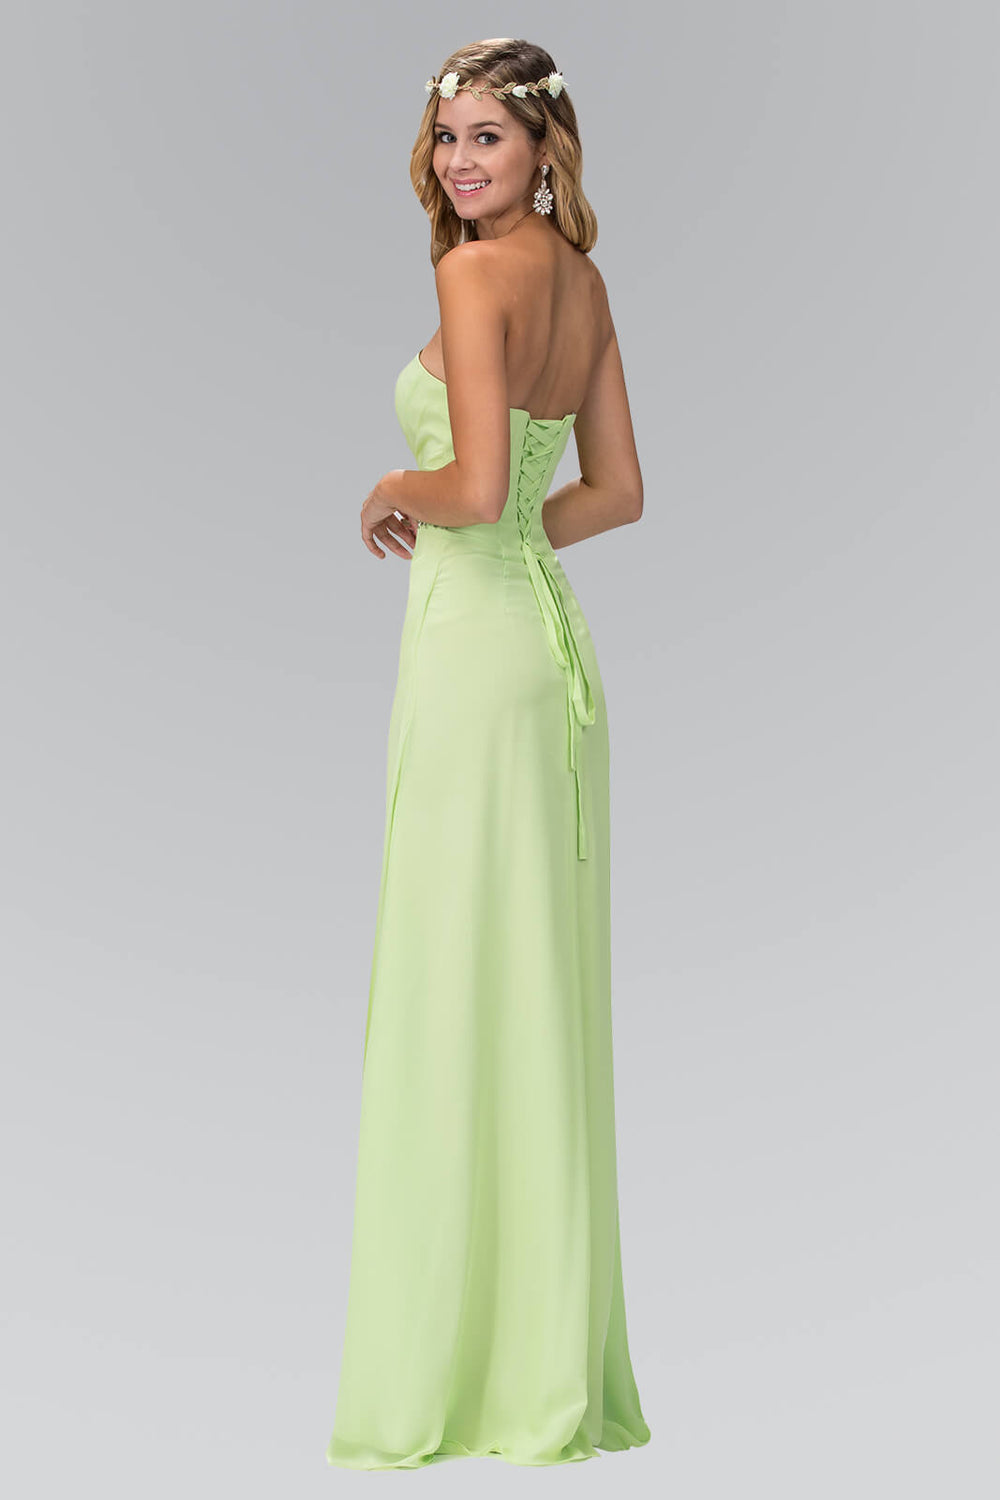 Strapless Sweetheart Long Formal Dress - The Dress Outlet